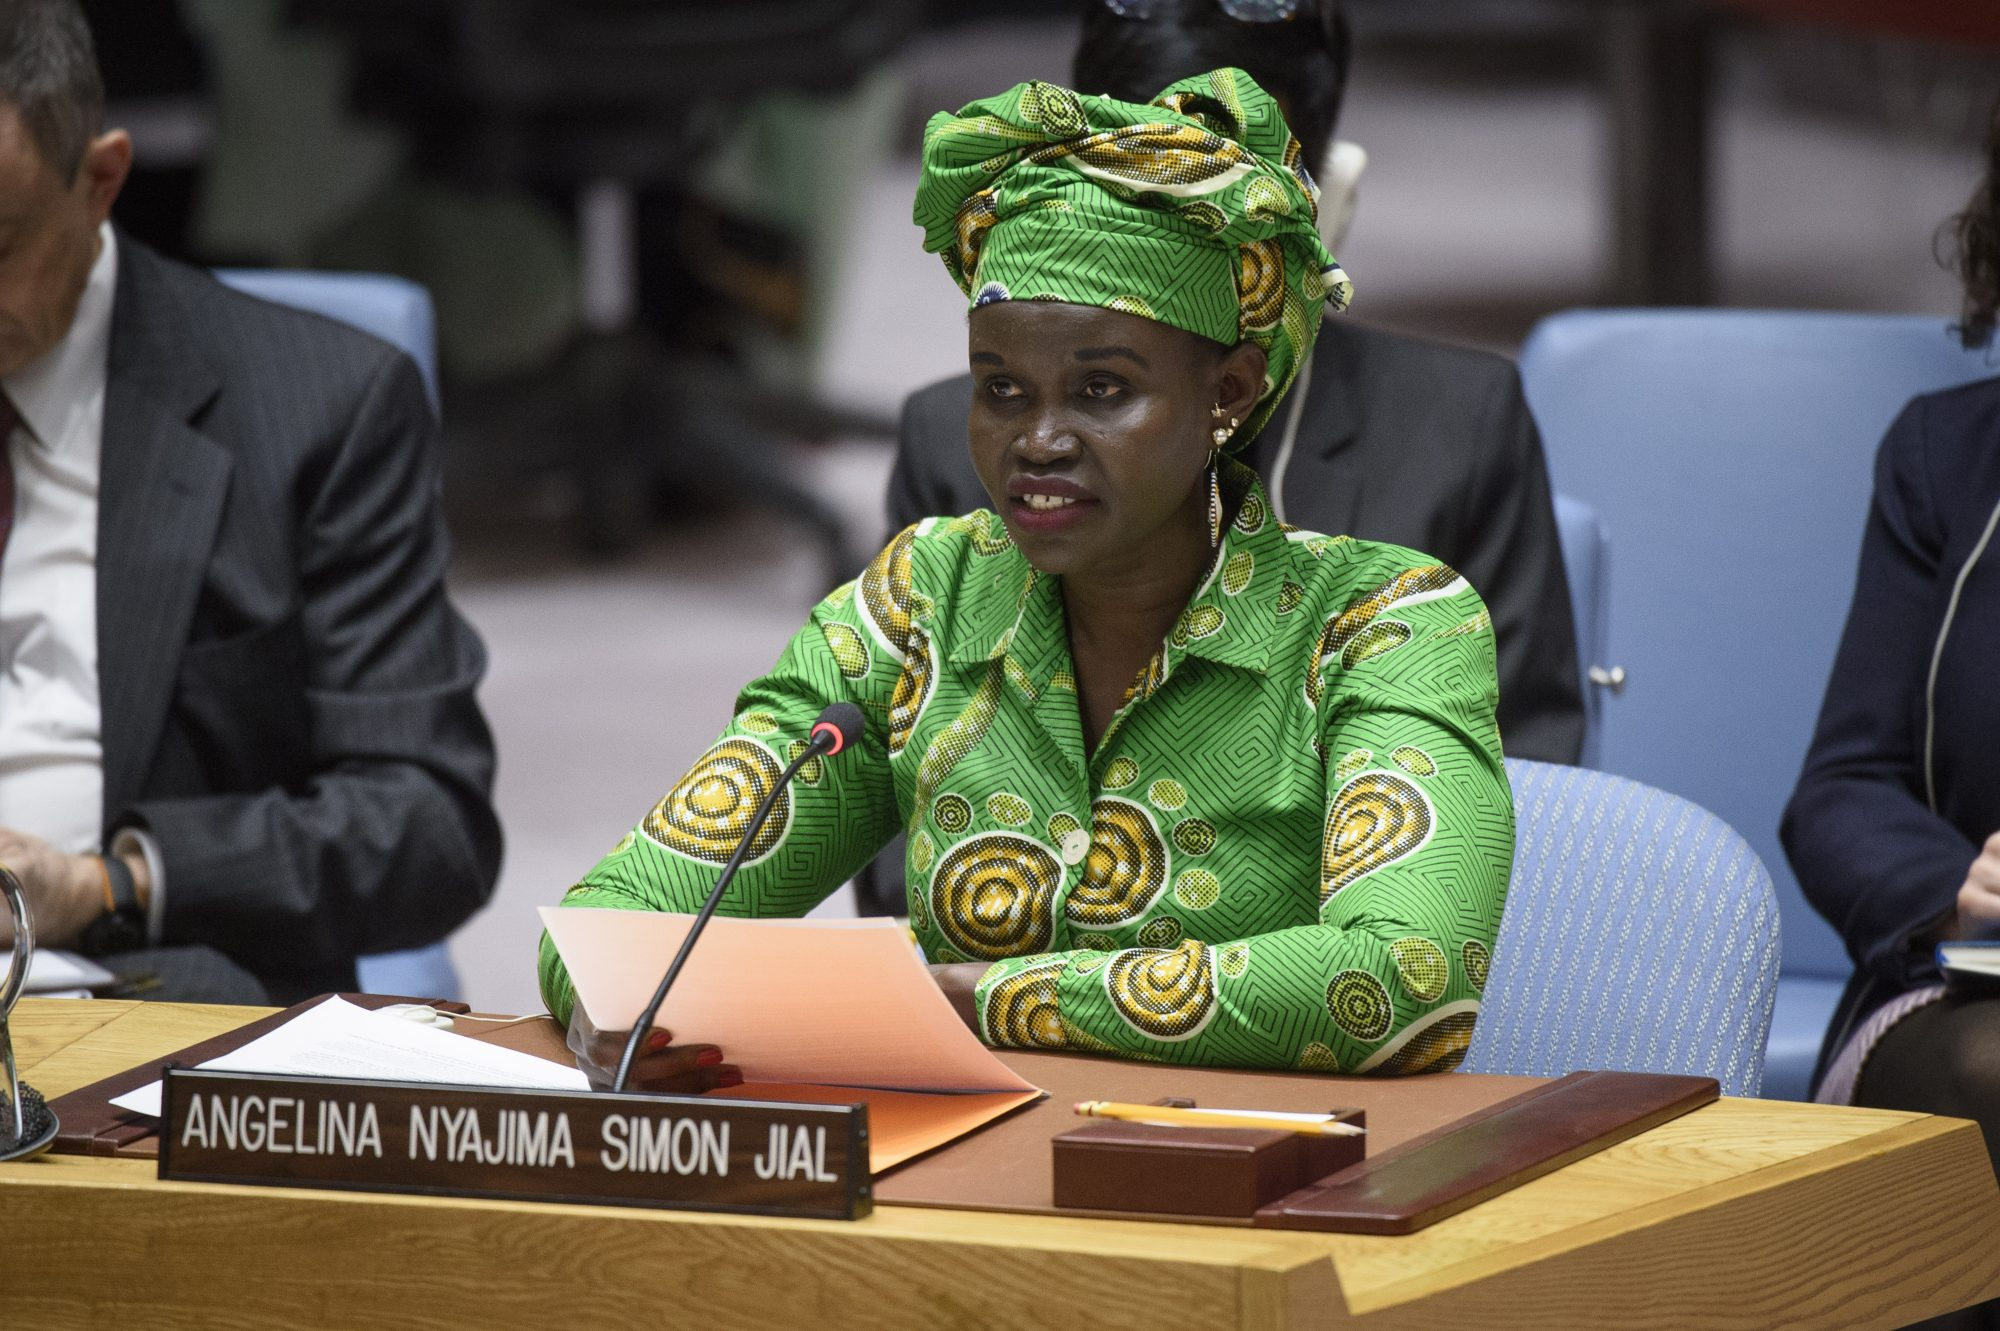 UN Security Council Briefing on South Sudan by Angelina Nyajima Simon Jial